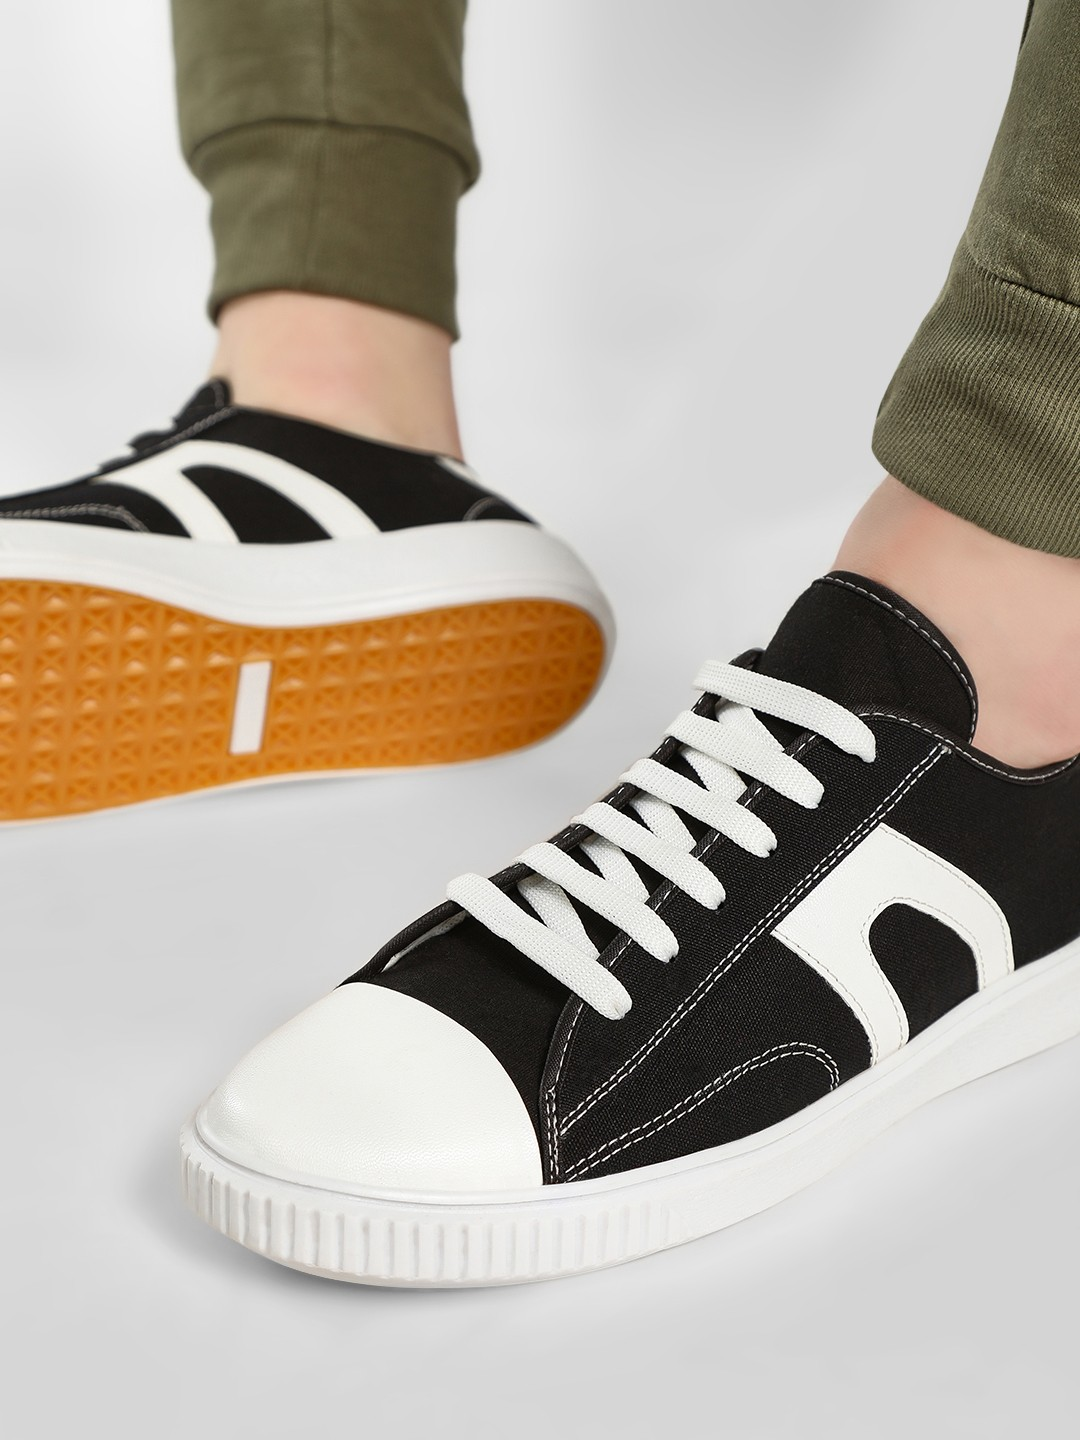 Kindred Black Canvas Panelled Lace-Up Sneakers 1